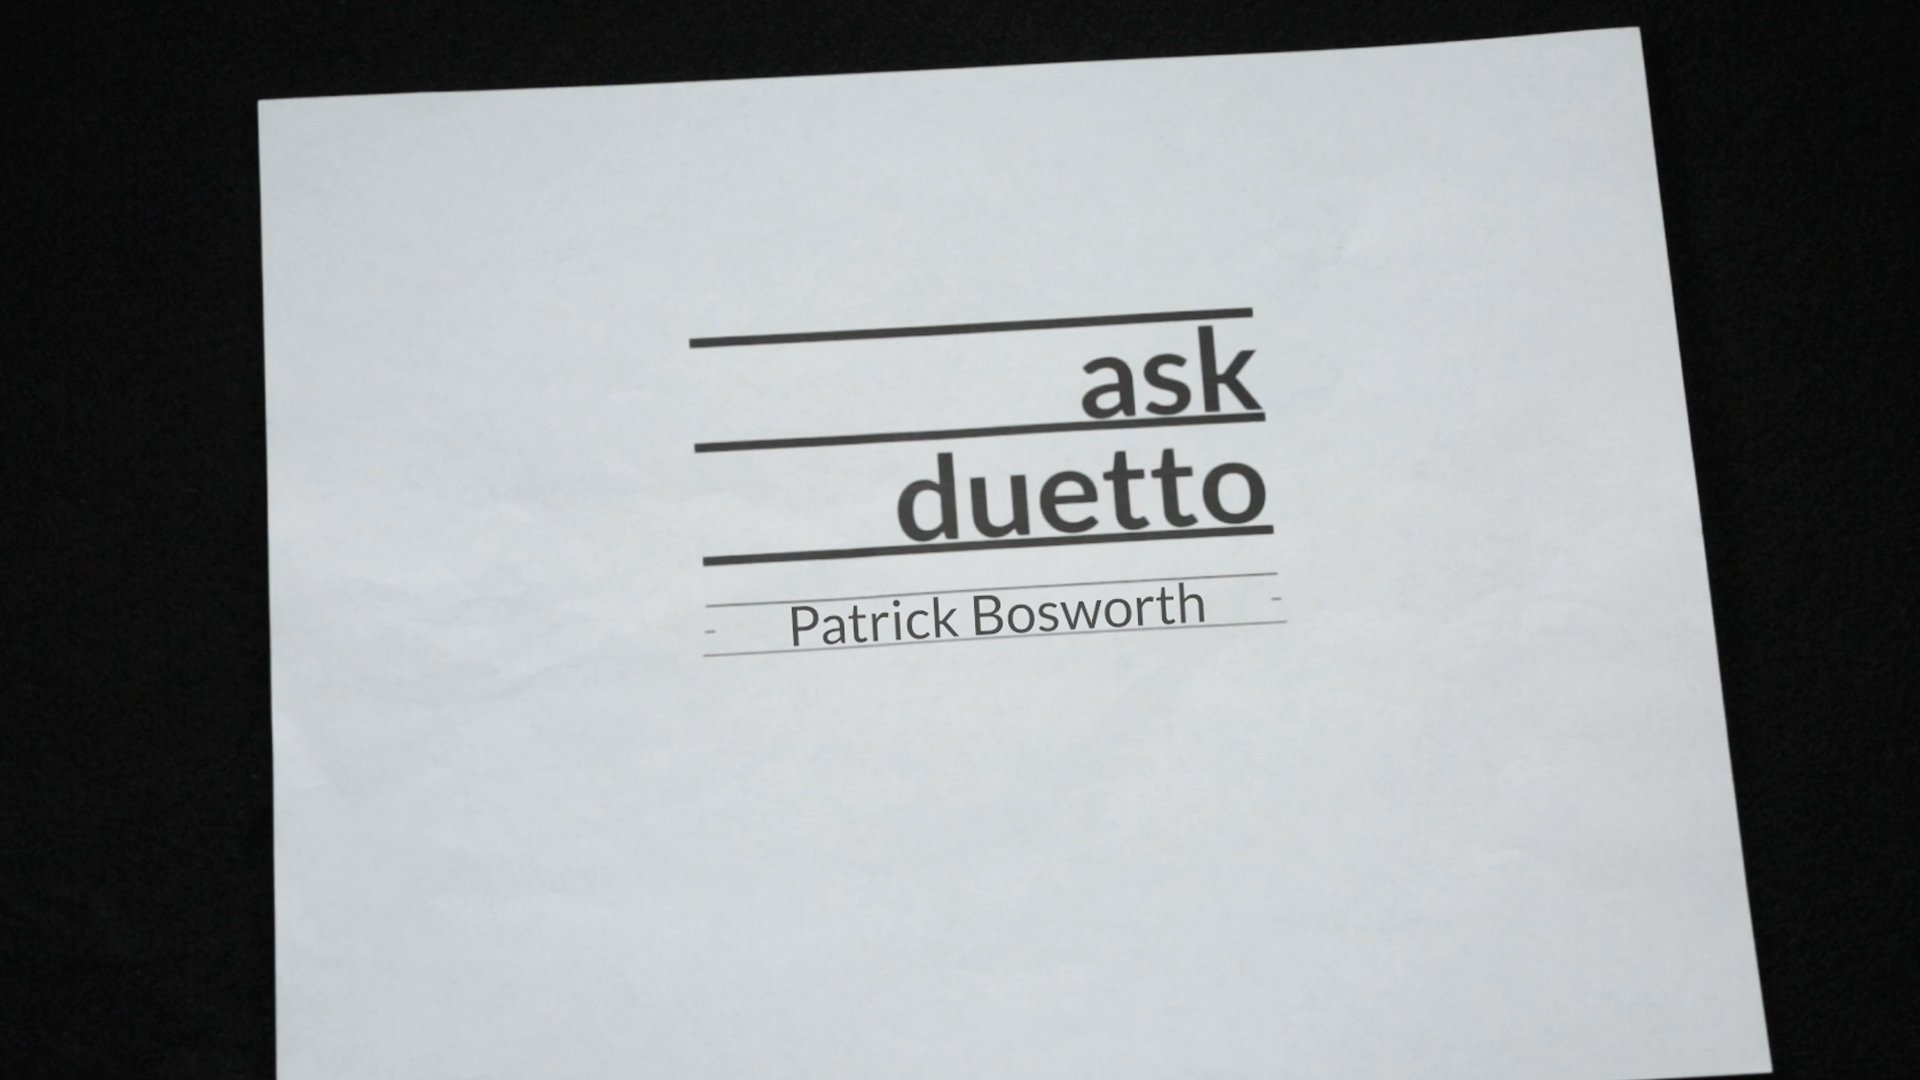 ASK DUETTO, Episode 4: How will Duetto help my team do their jobs more efficiently?